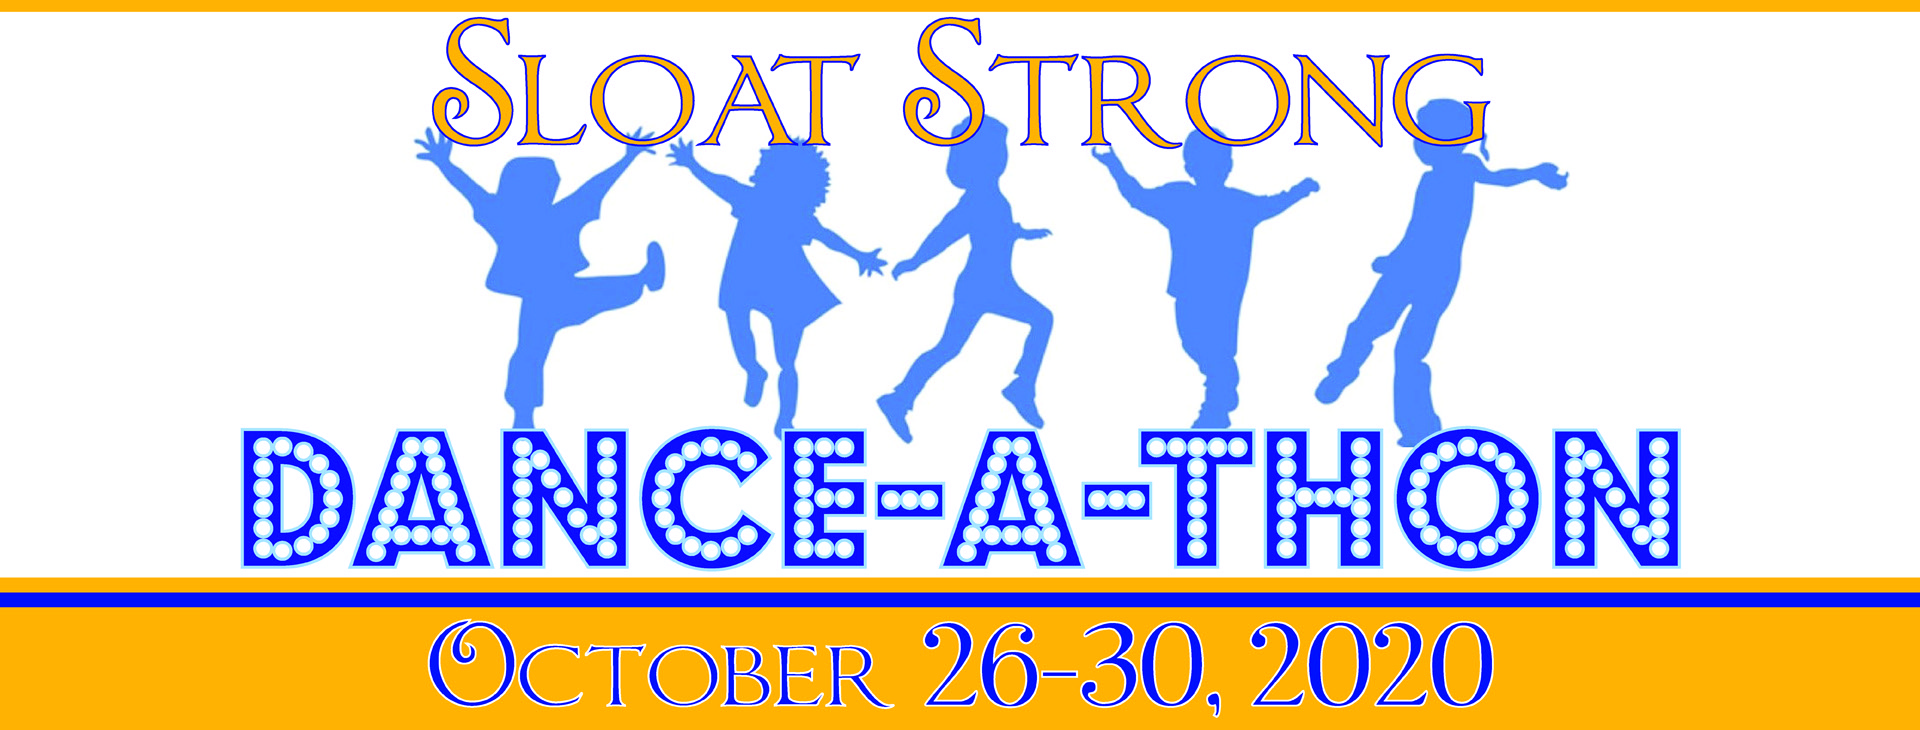 SLOAT STRONG DANCE-A-THON